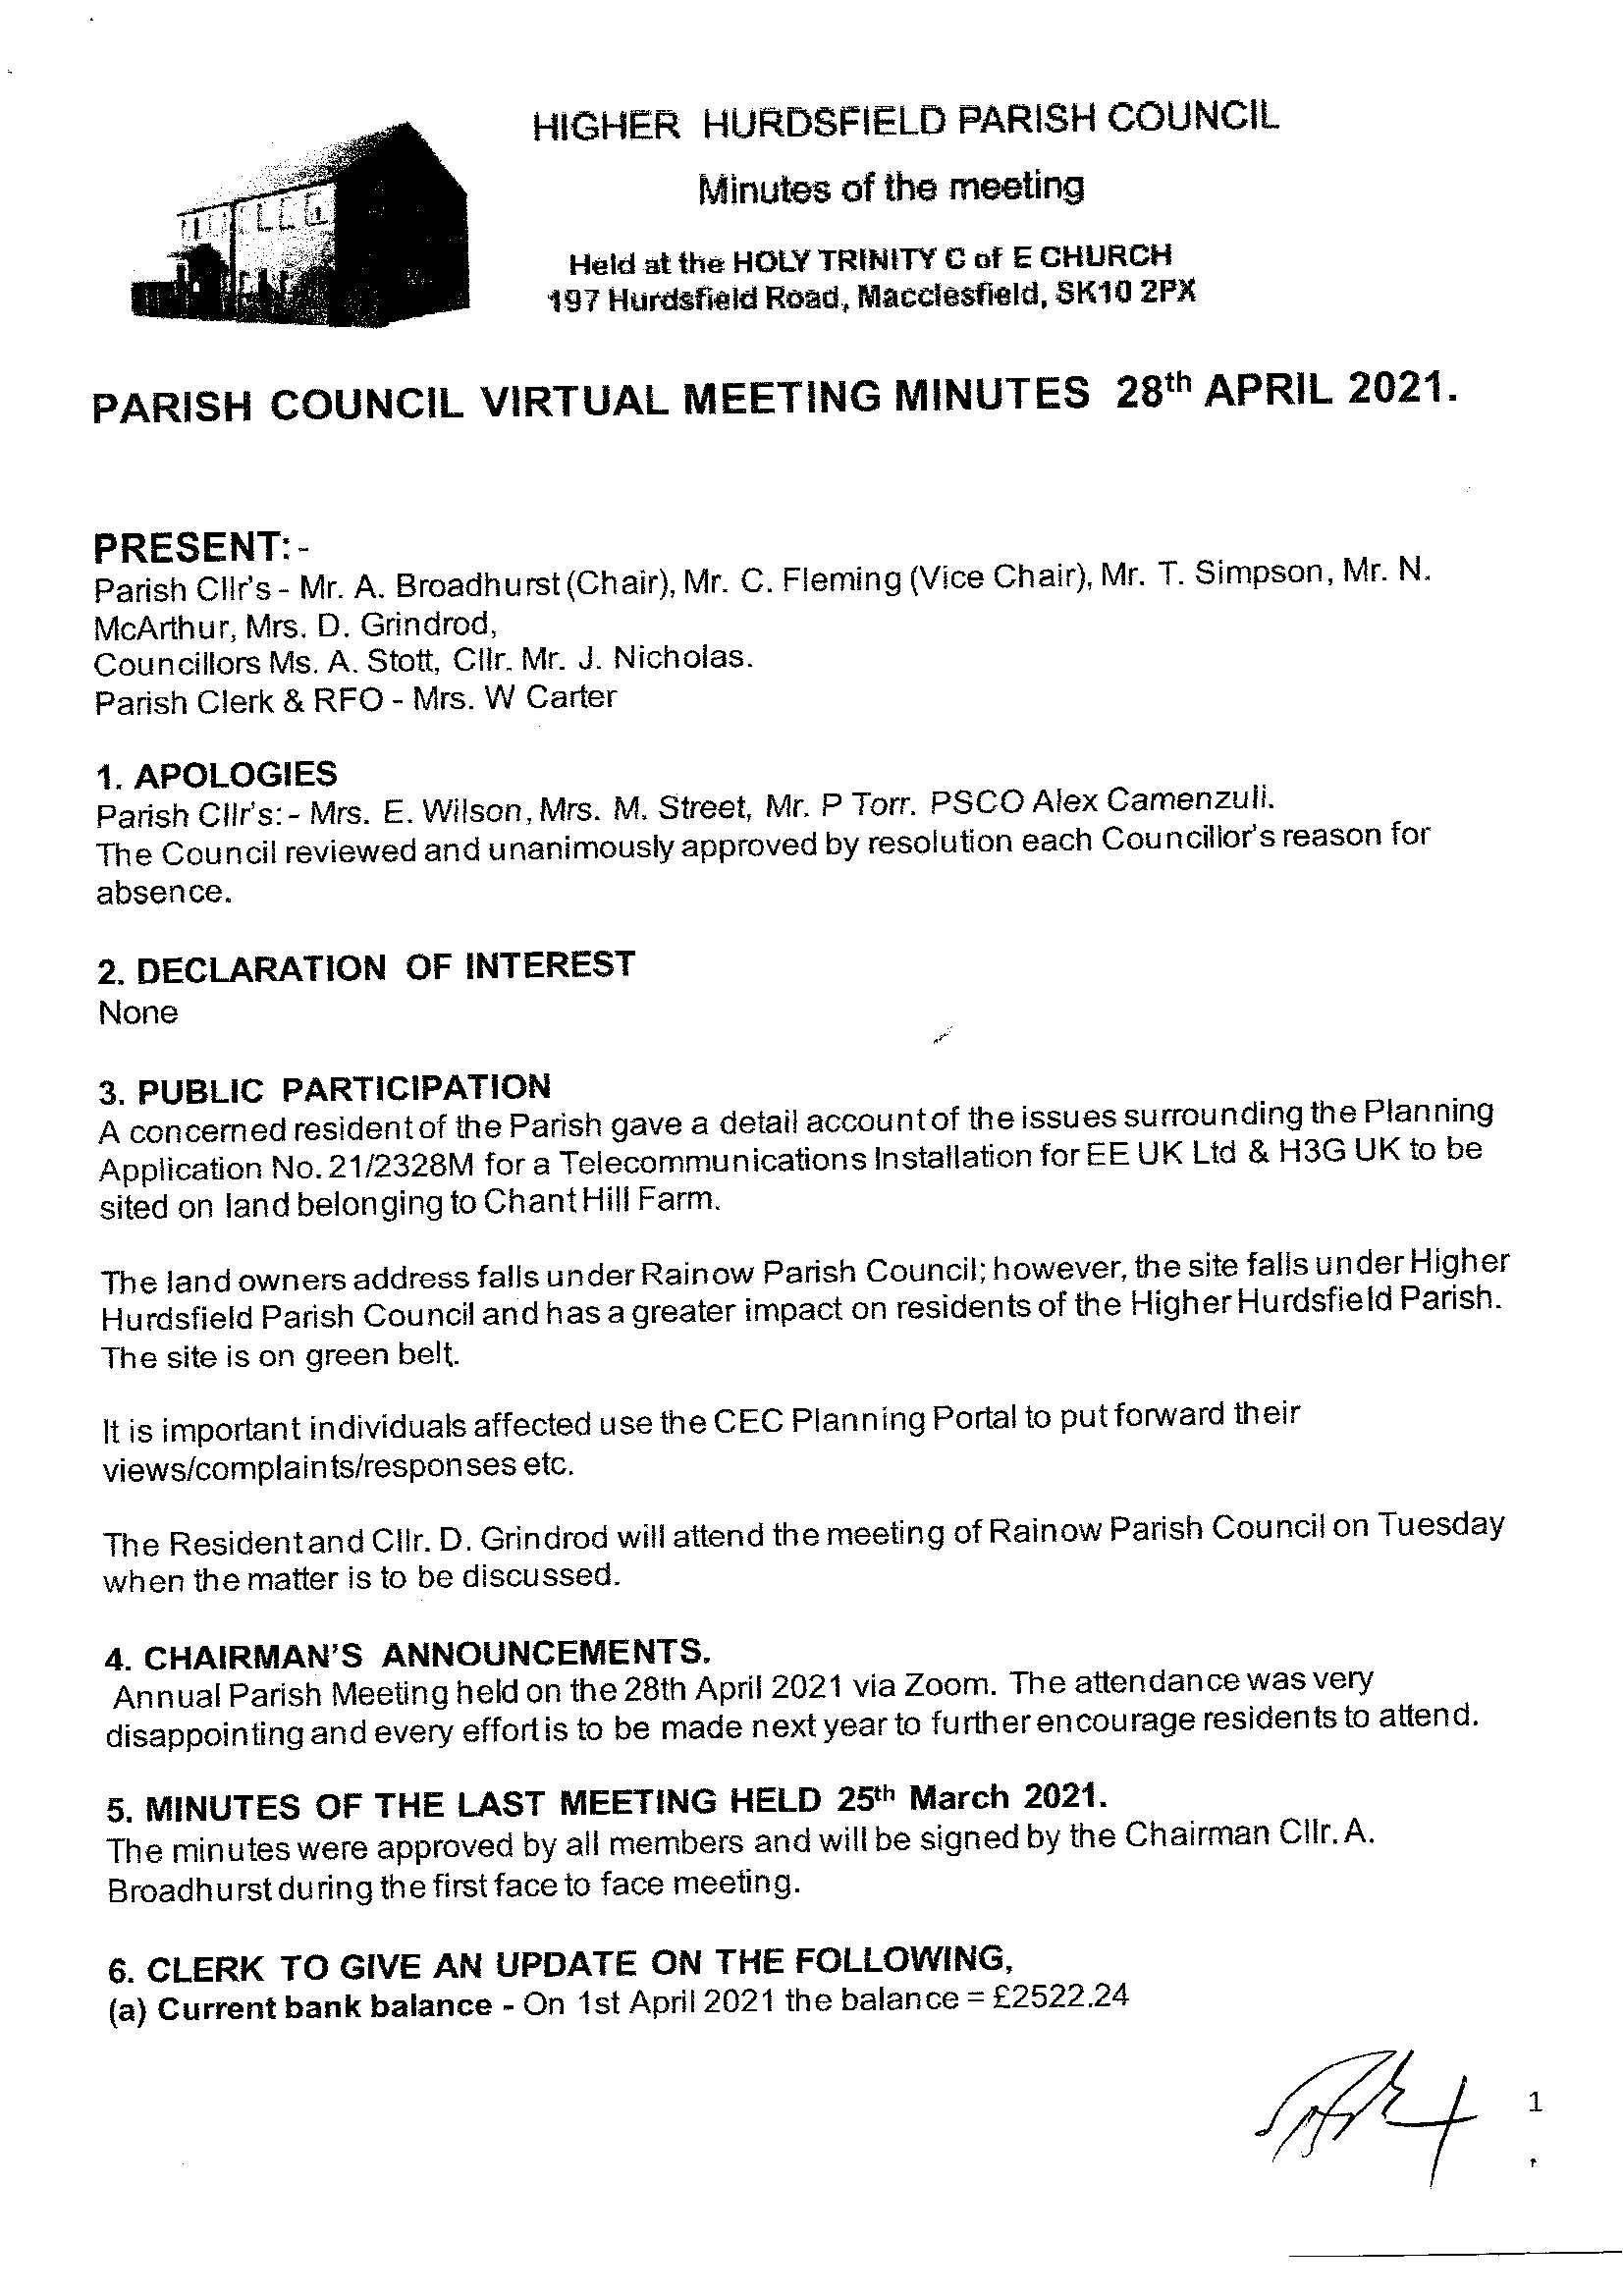 Signed Meeting Minutes 1 0f 4